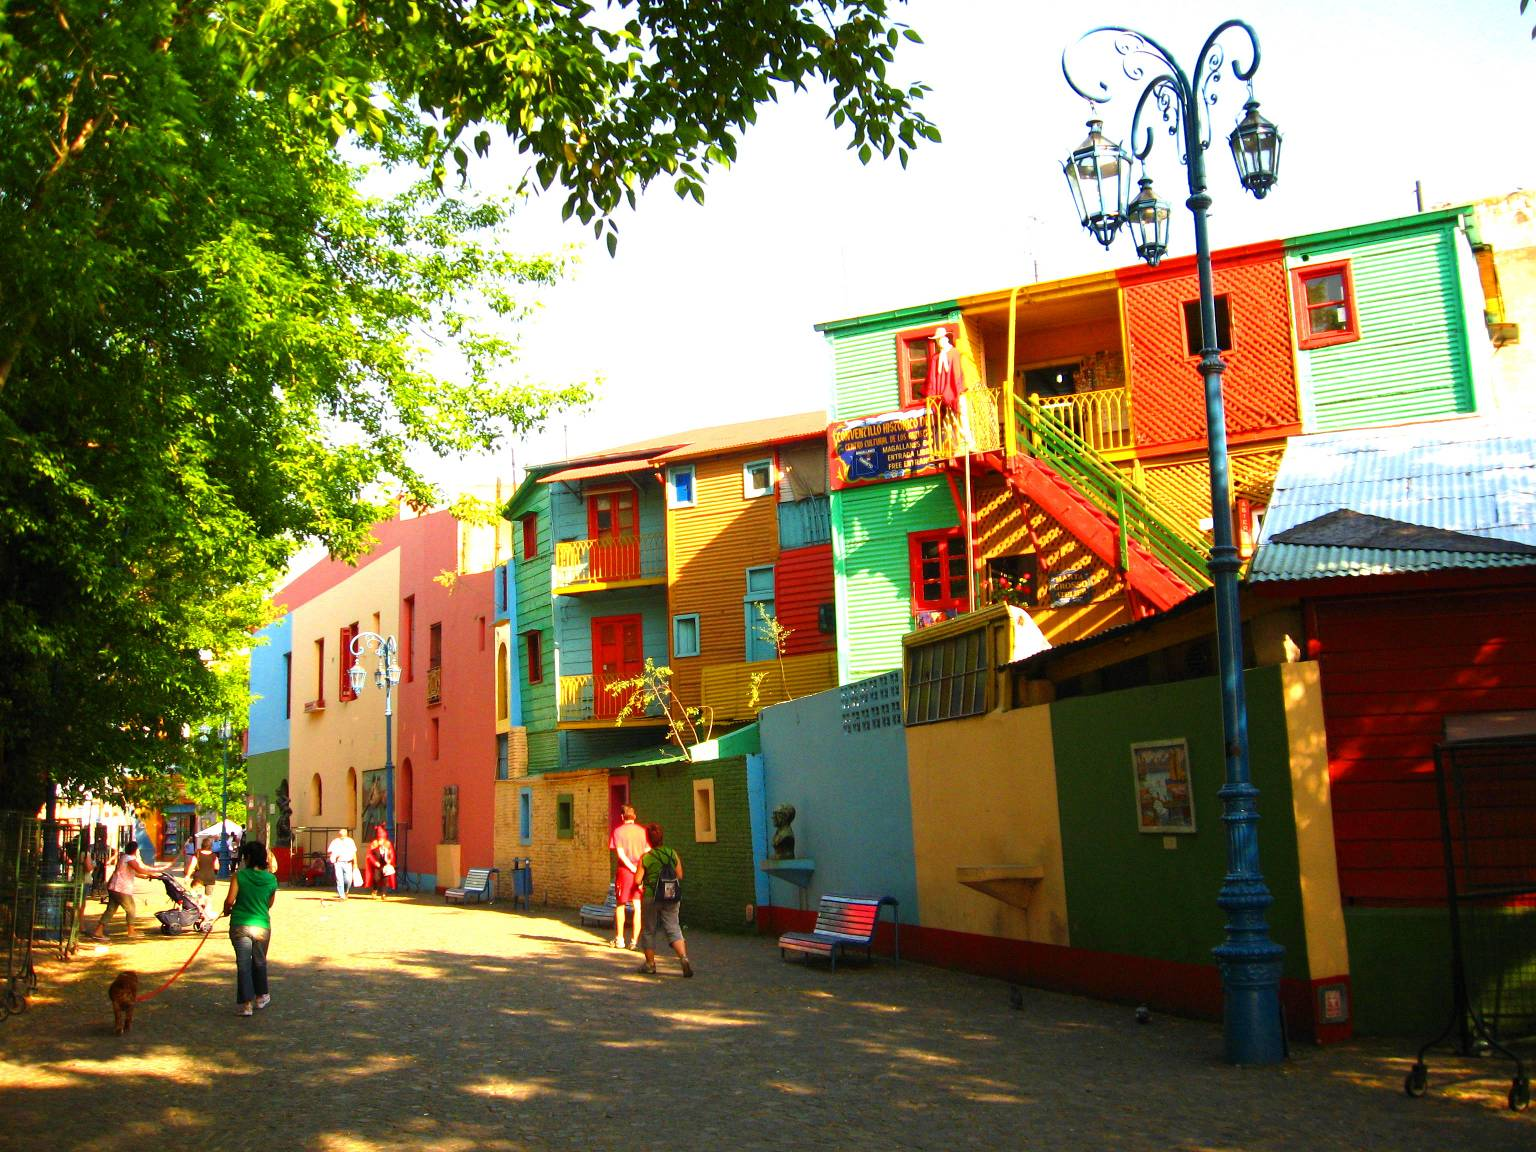 You'll find brightly-colored buildings in the La Boca neighborhood of Buenos Aires, Argentina. Although primarily a tourist destination today, the area is surrounded by houses with painted sheet walls of different colors. Photo by Miranda Helbling.